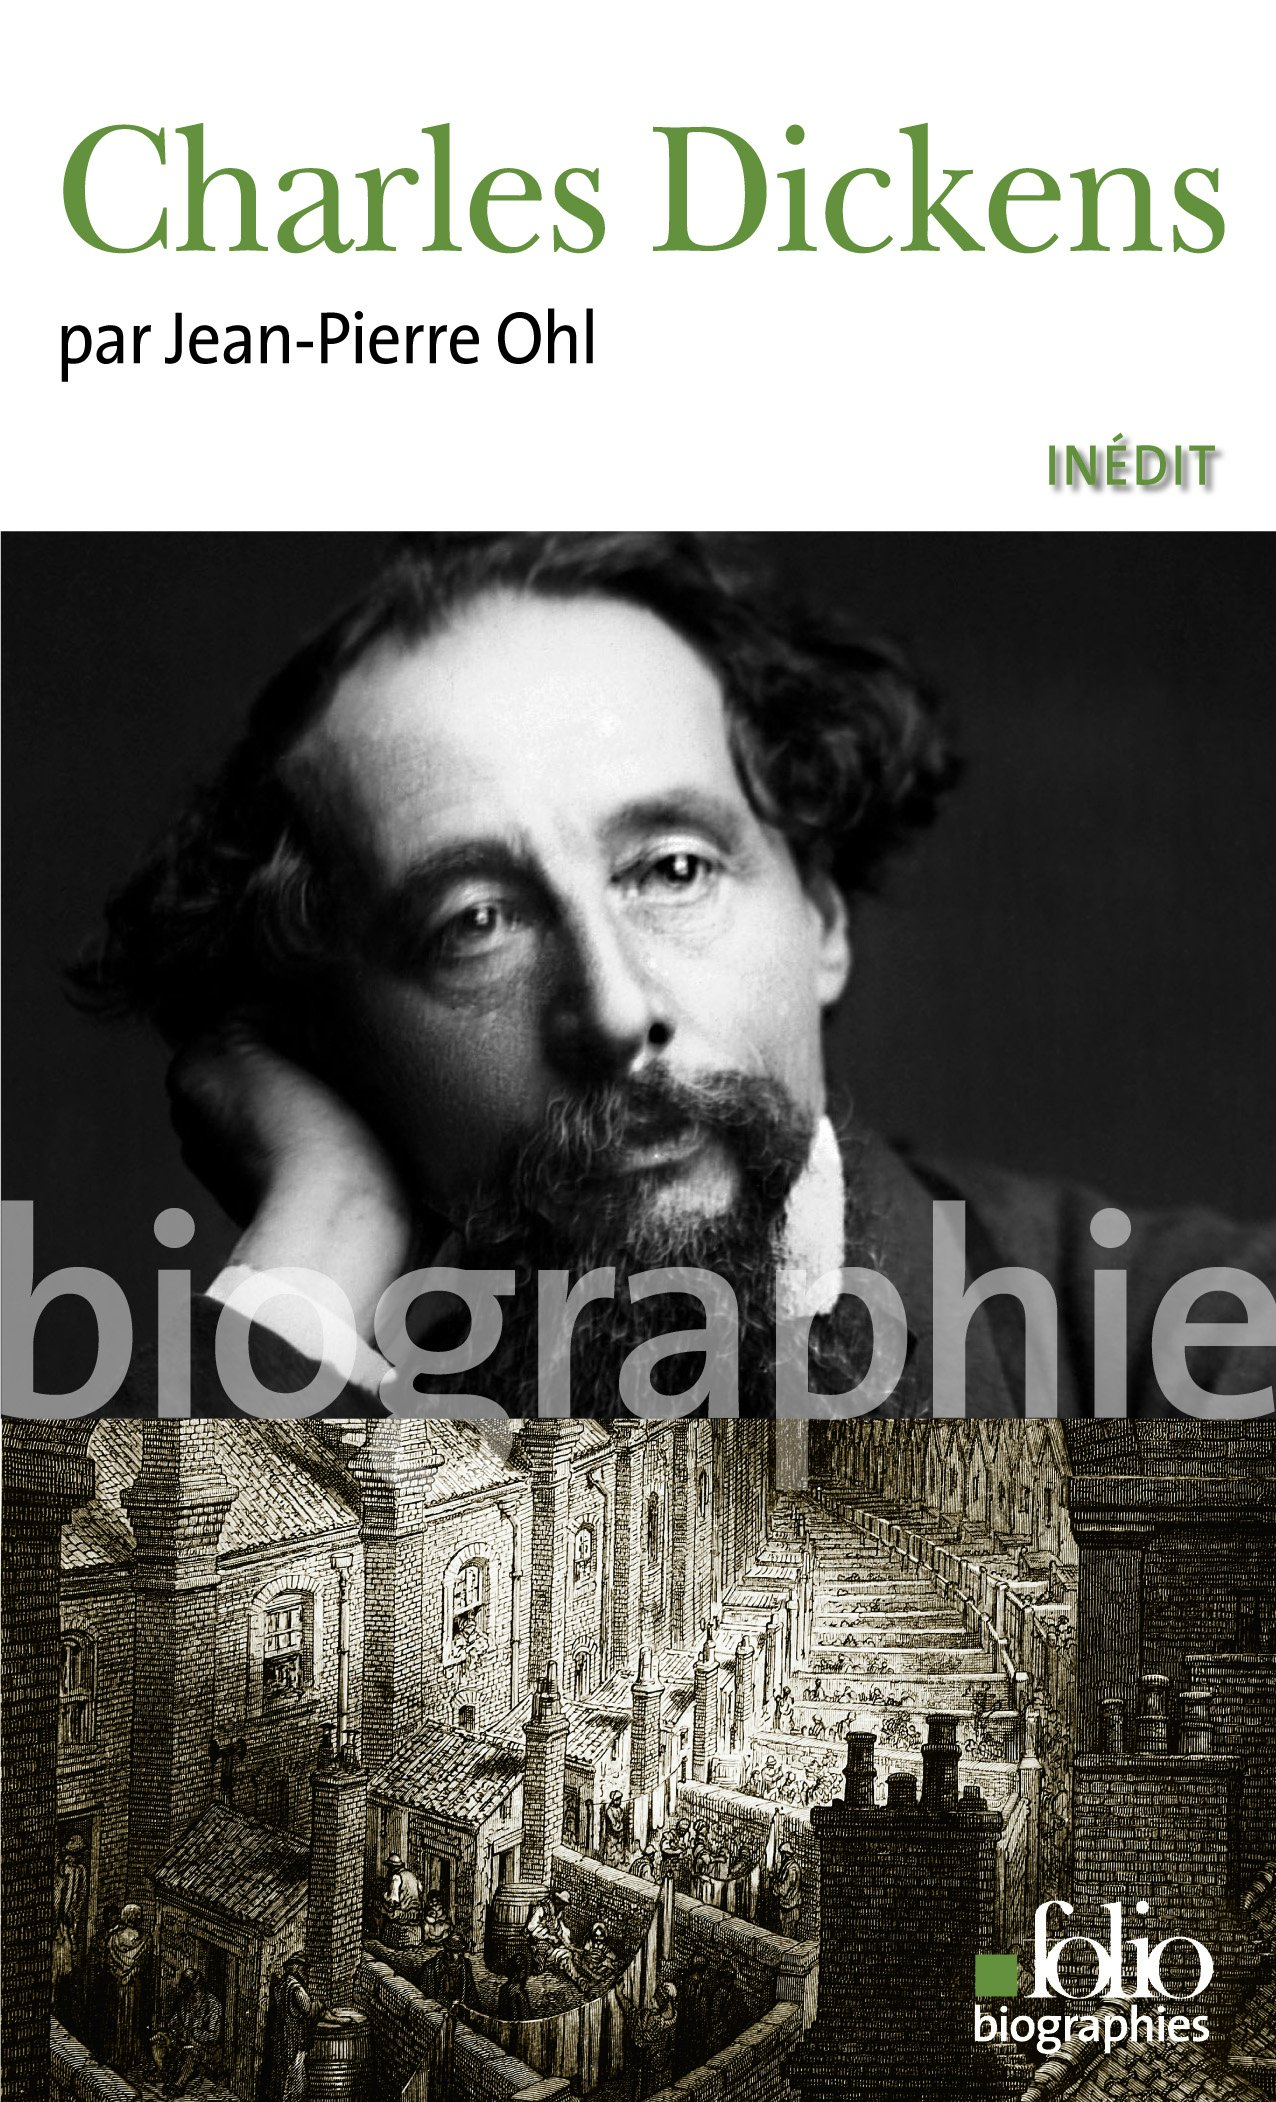 Charles Dickens – Jean-Pierre Ohl